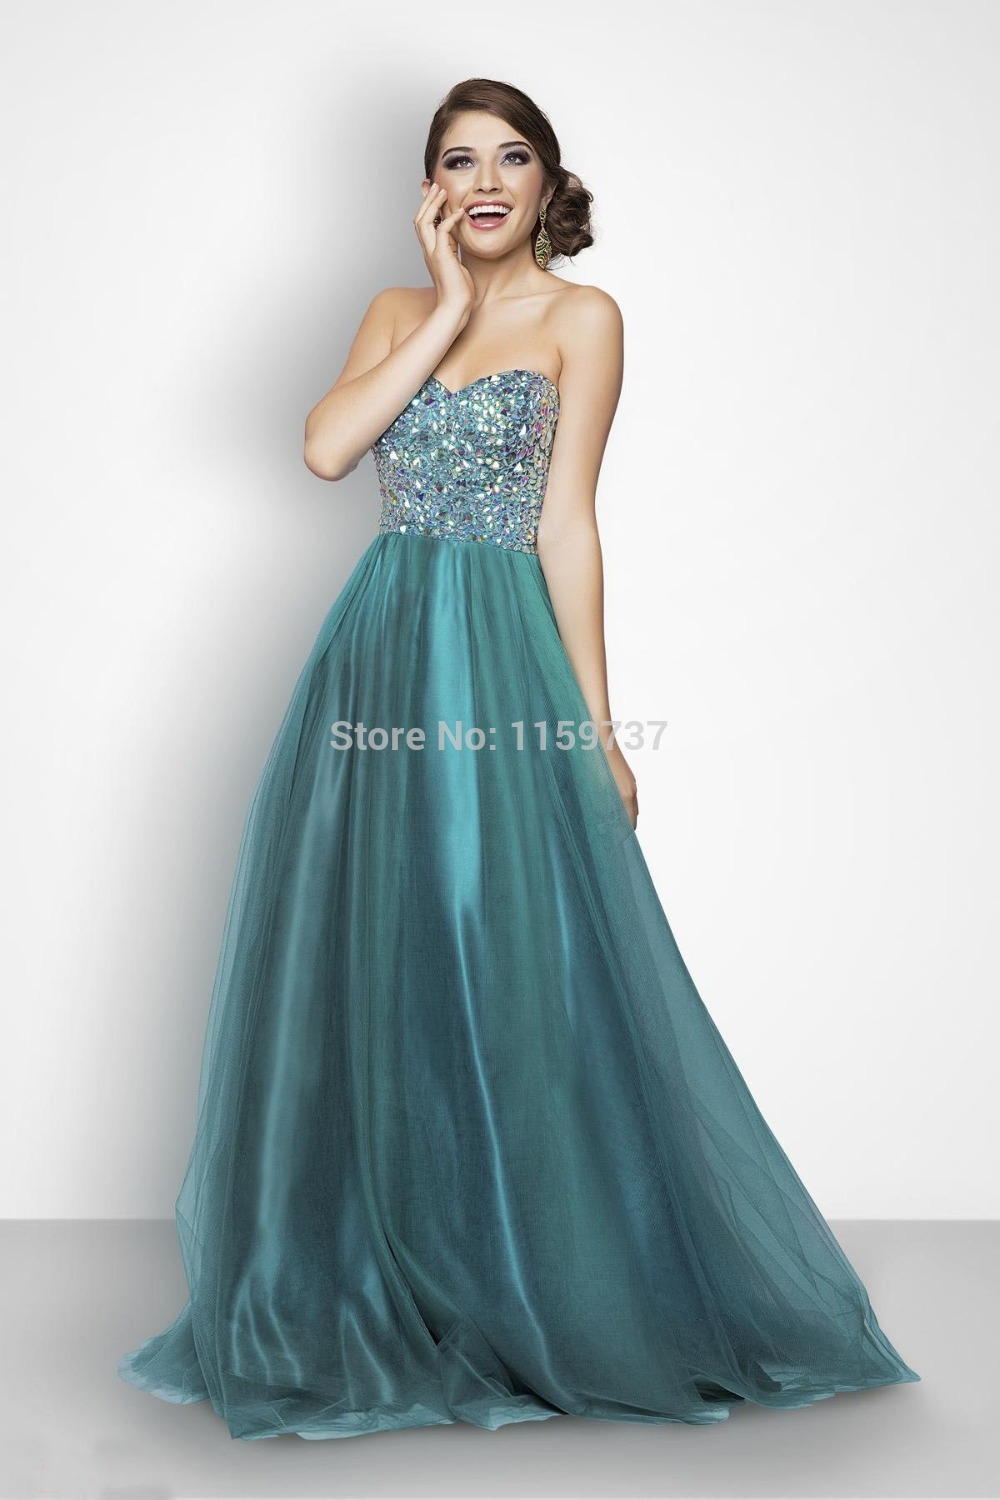 Le Chateau Prom Dresses Lime Green Dress Blush Junior A Line Floor ...